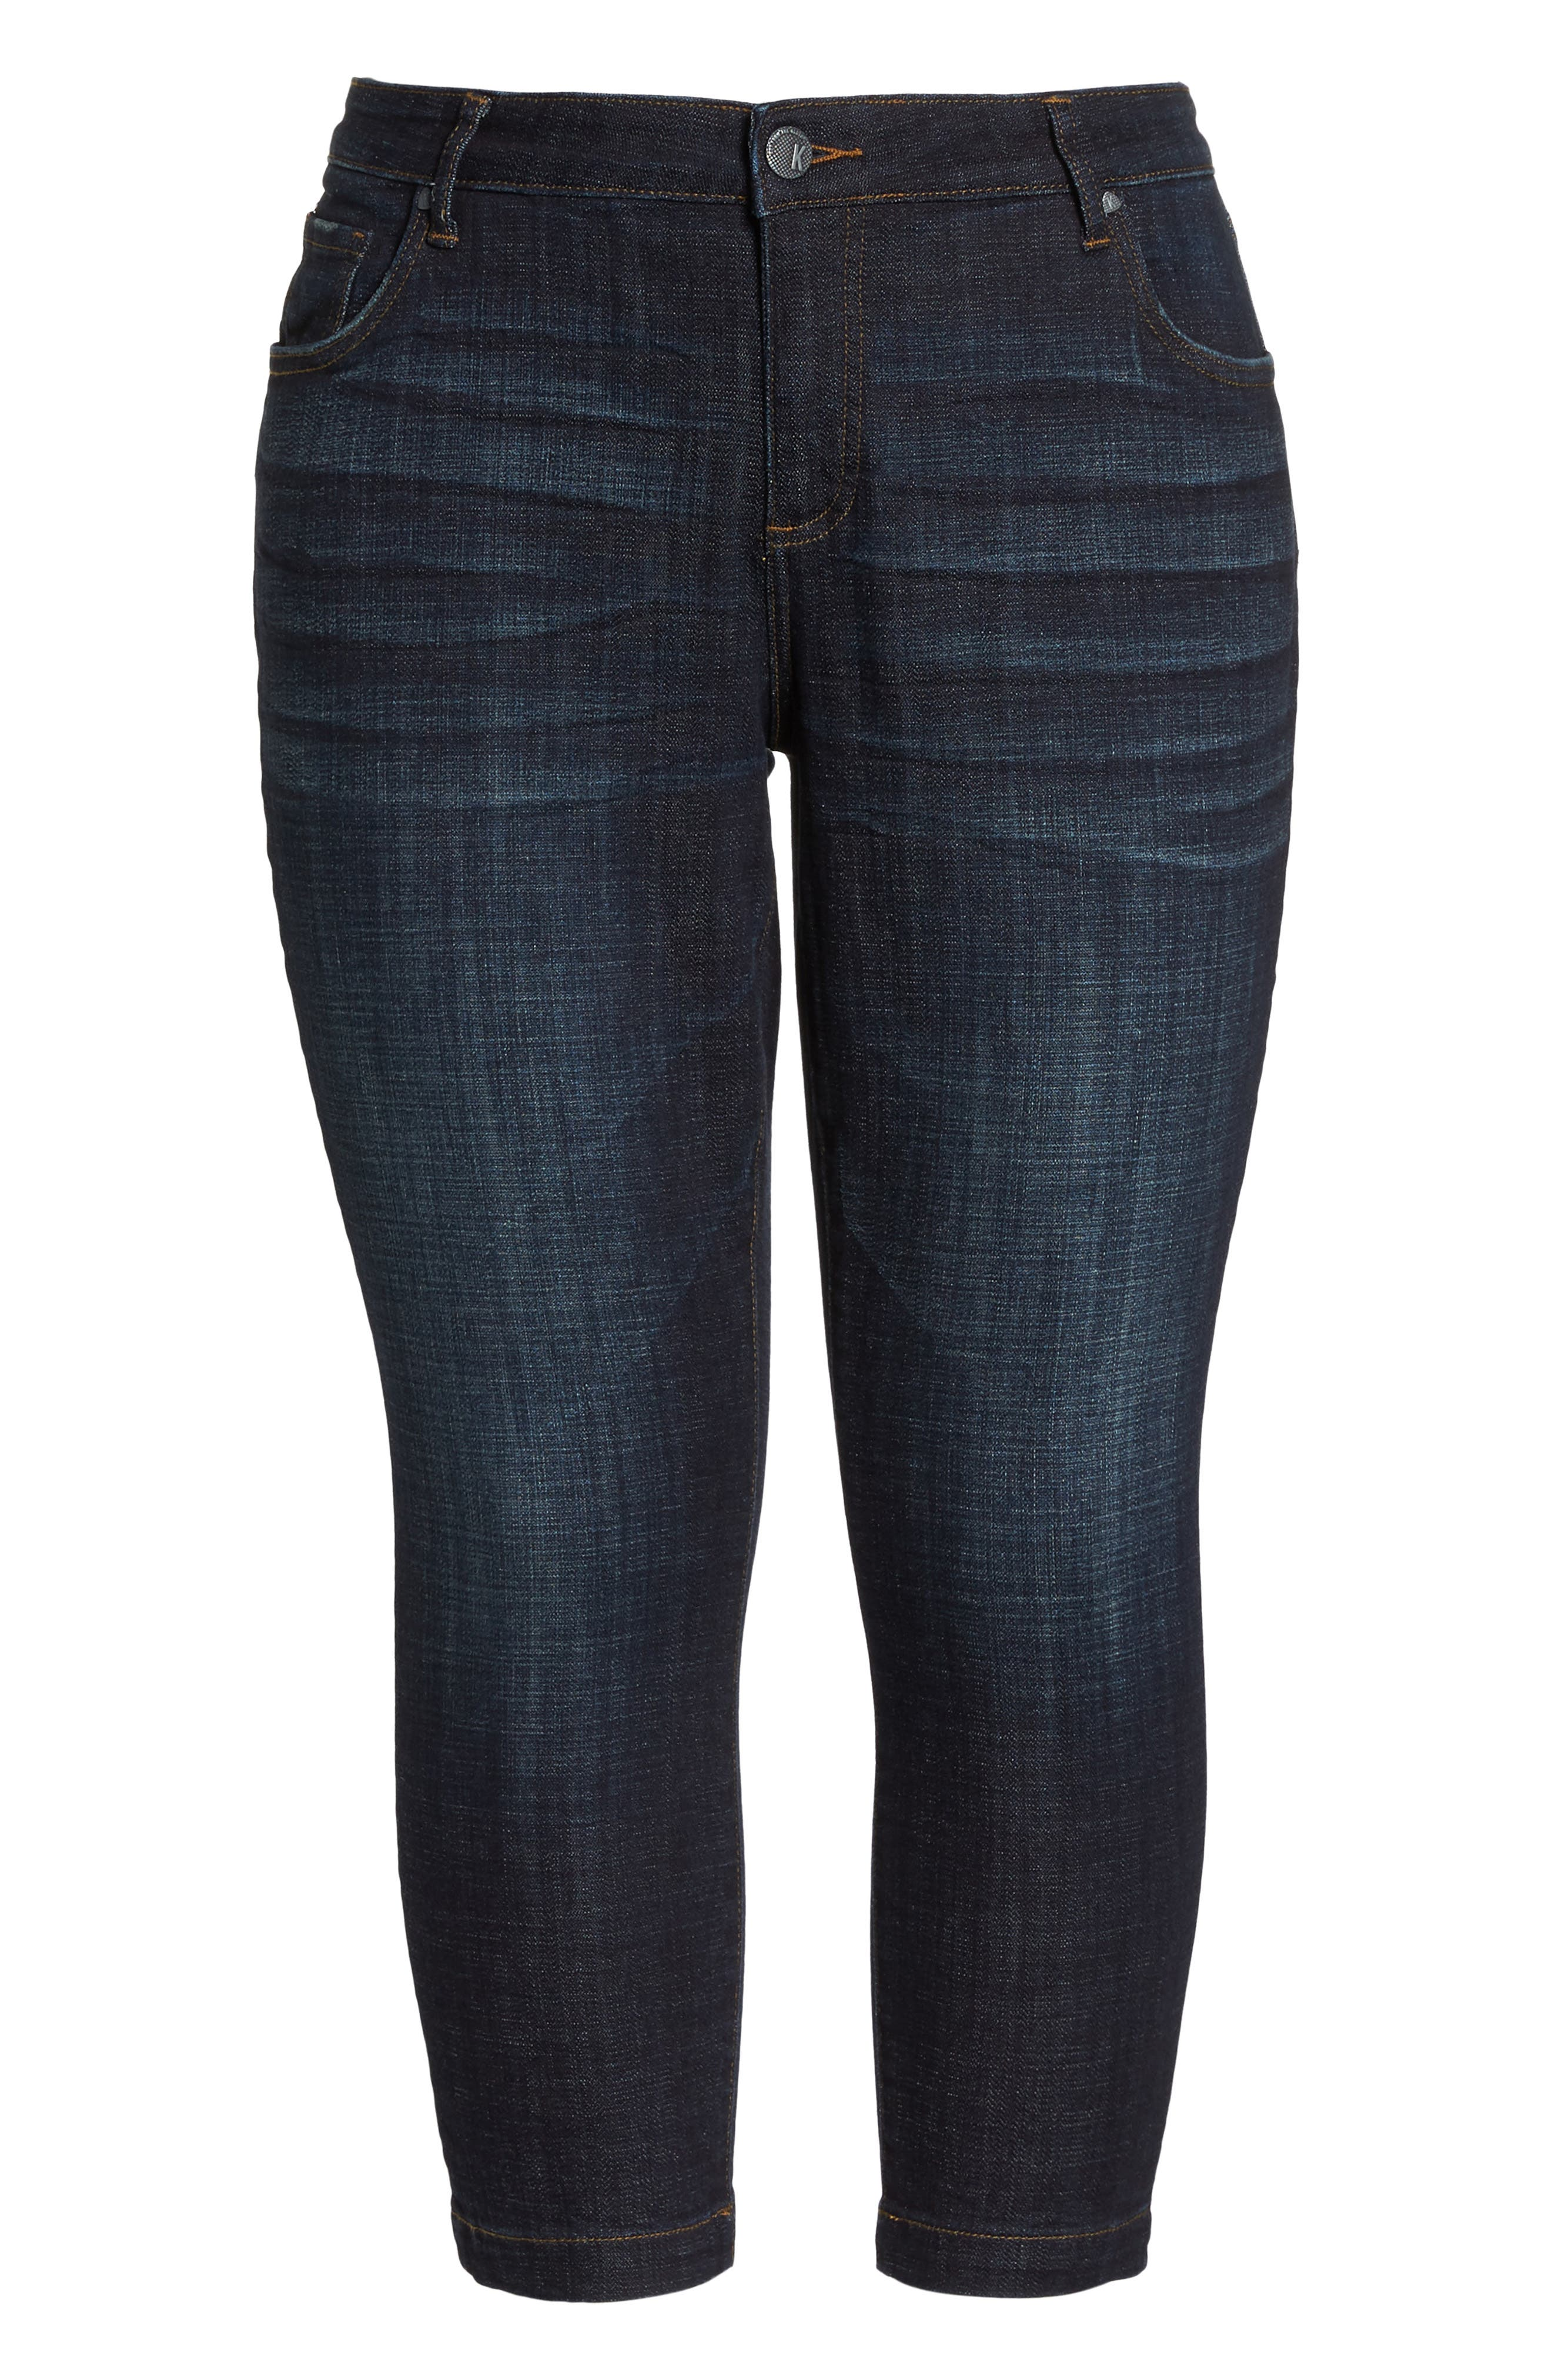 KUT FROM THE KLOTH, Lauren Crop Jeans, Alternate thumbnail 7, color, ACKNOWLEDGING